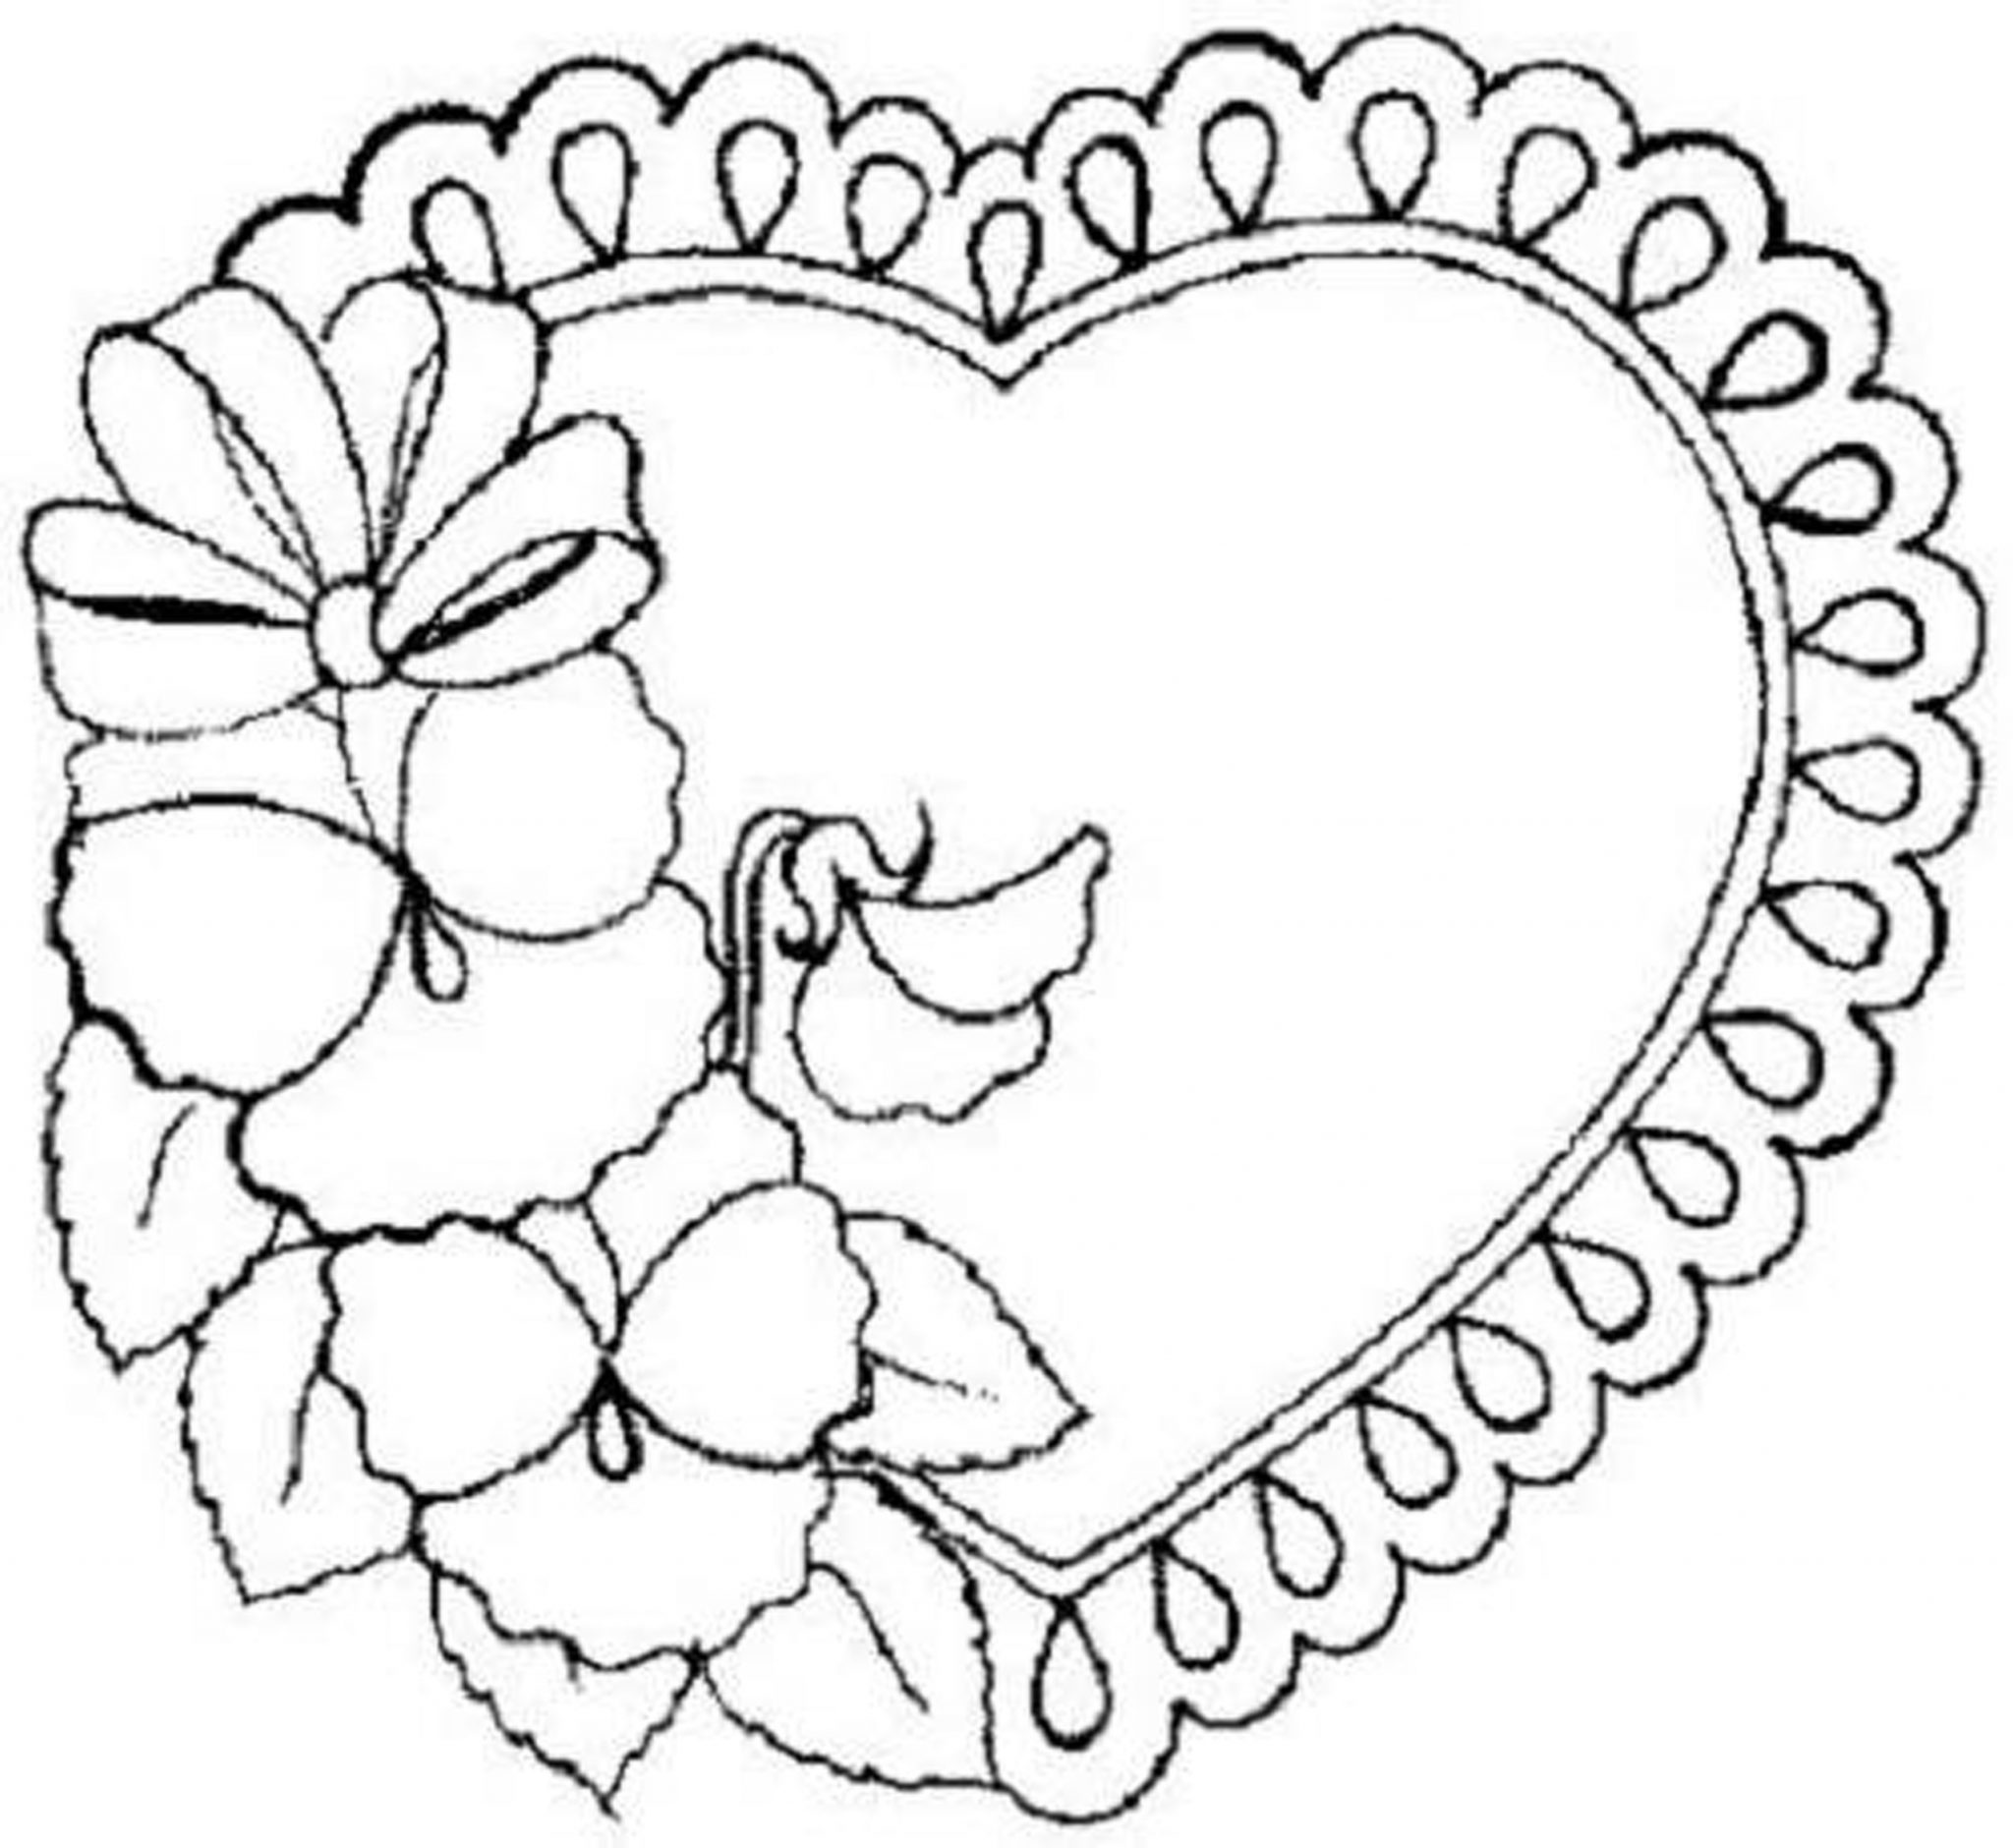 heart-flower-coloring-pages-for-girls | | BestAppsForKids.com